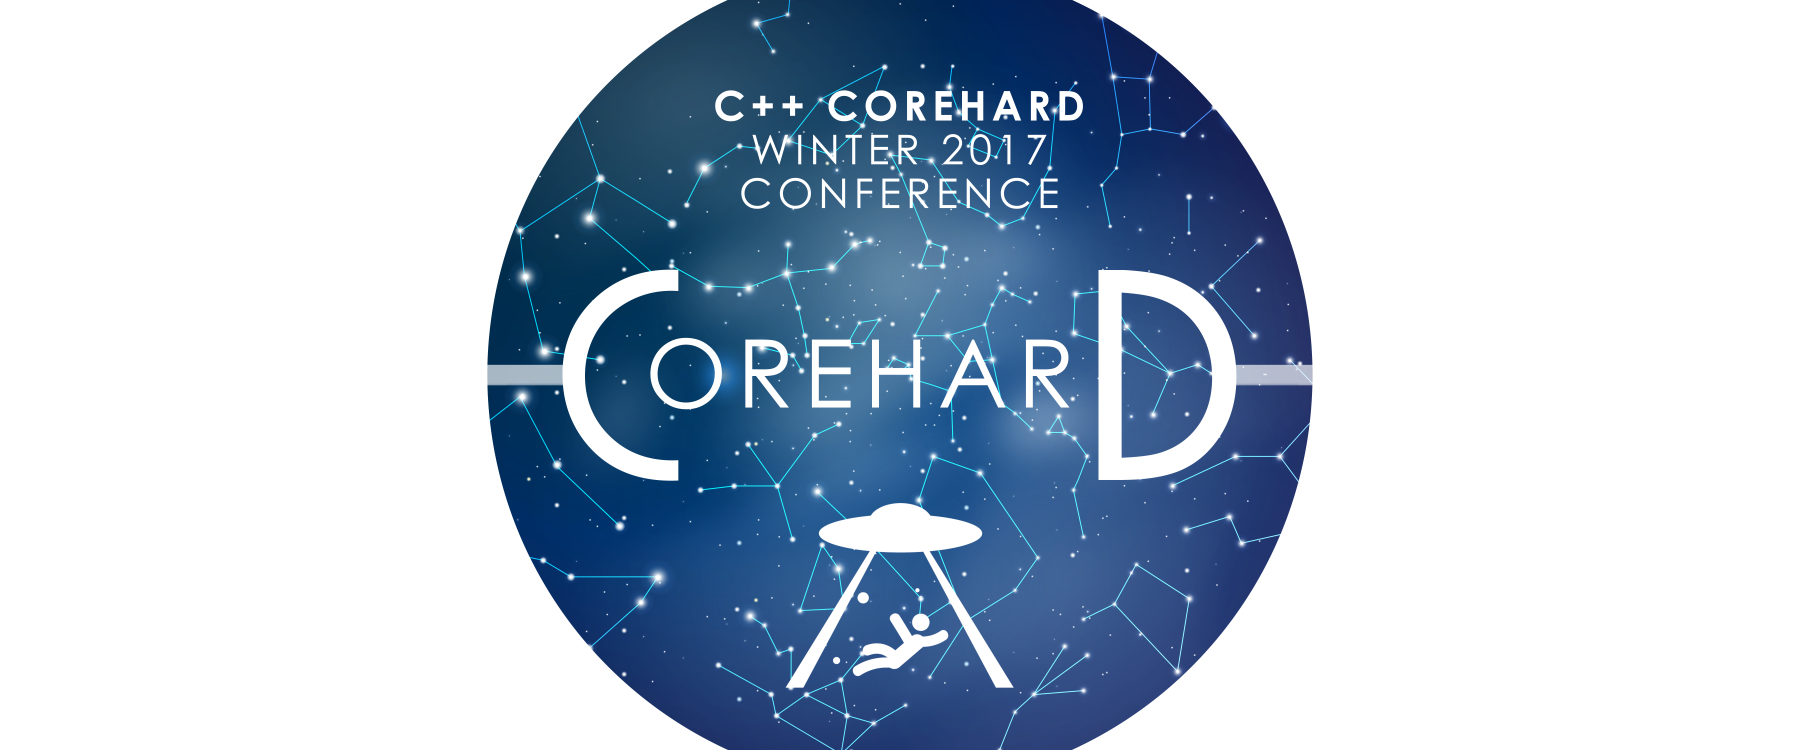 C++ CoreHard Winter 2017 Conference